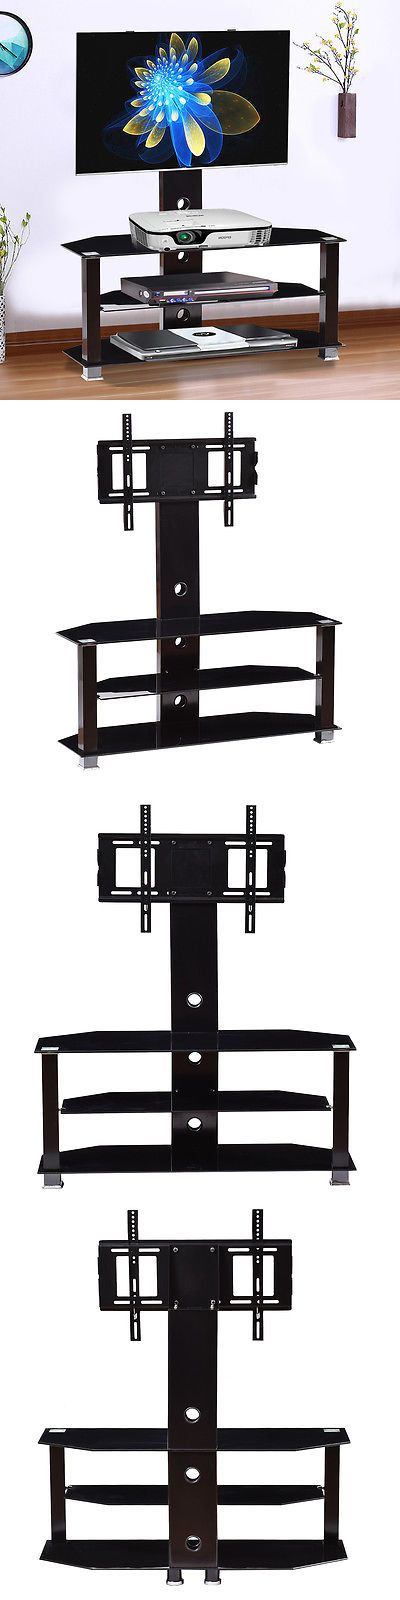 Entertainment Units TV Stands: Tv Stand Rack Console 3 Glass Shelves Storage Entertainment Media To 60 Screen -> BUY IT NOW ONLY: $72.99 on eBay!